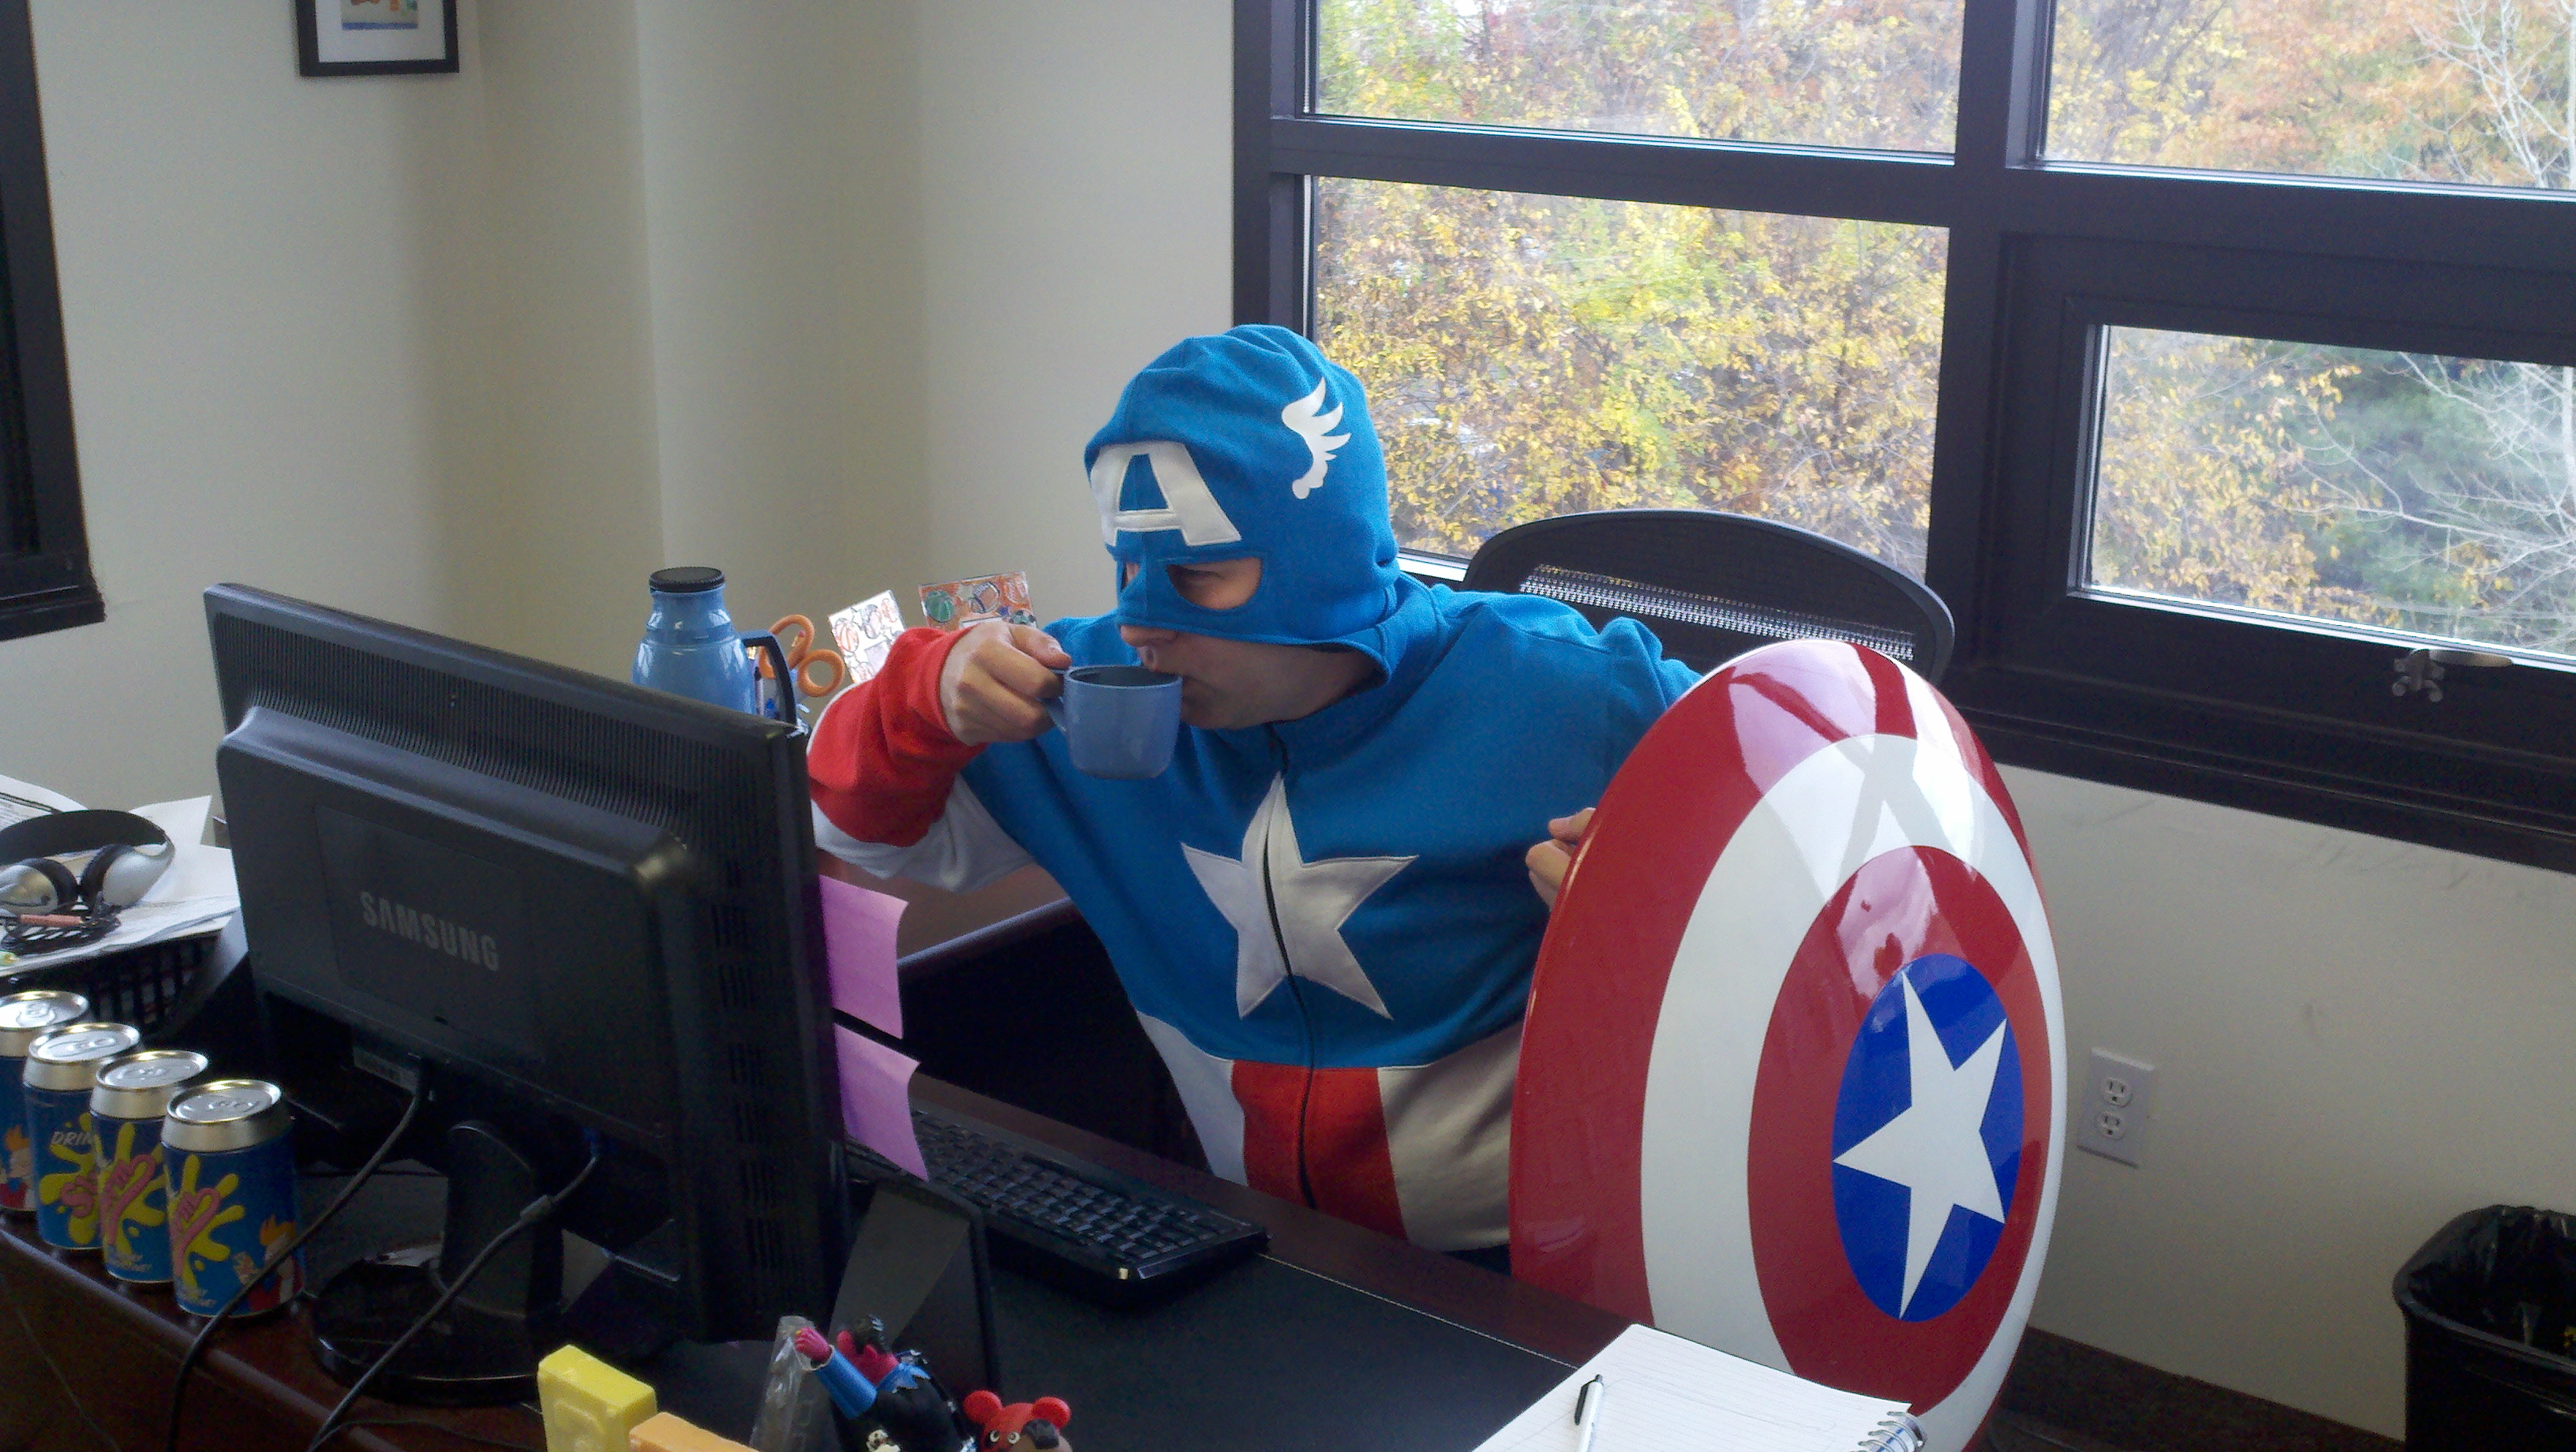 Captain America at work